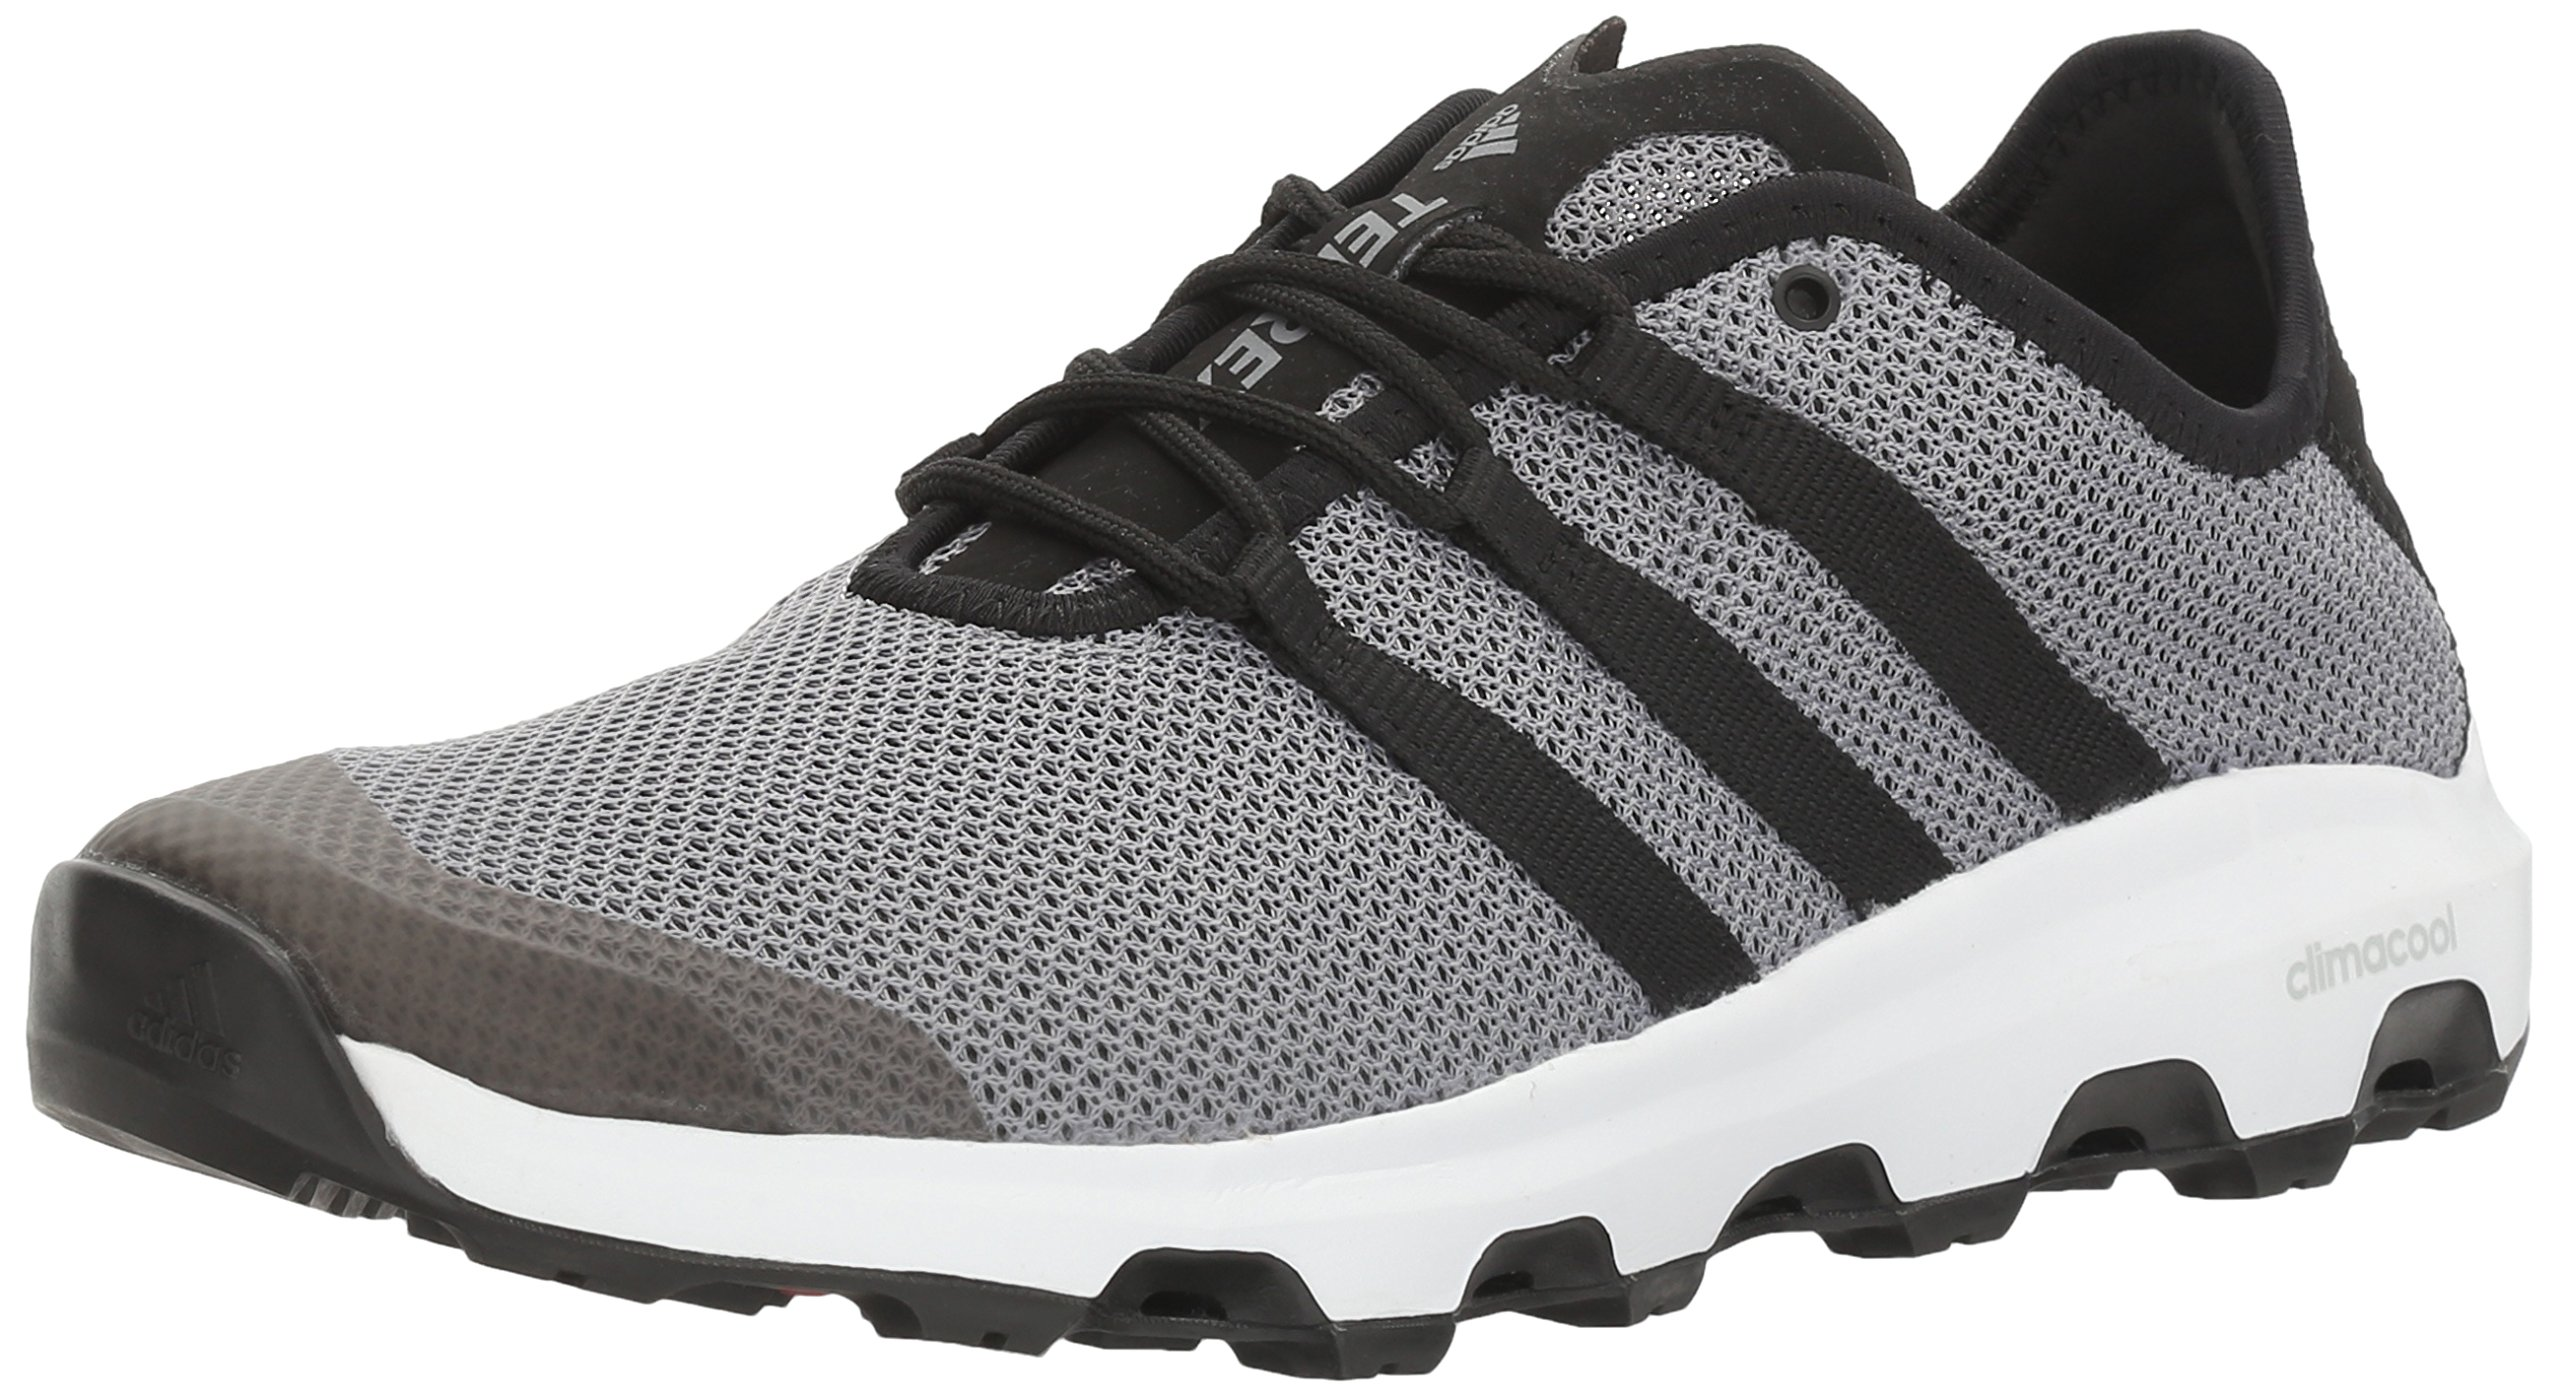 adidas outdoor Men's Terrex Climacool Voyager Water Shoe, Grey/Black/White, 10.5 M US by adidas outdoor